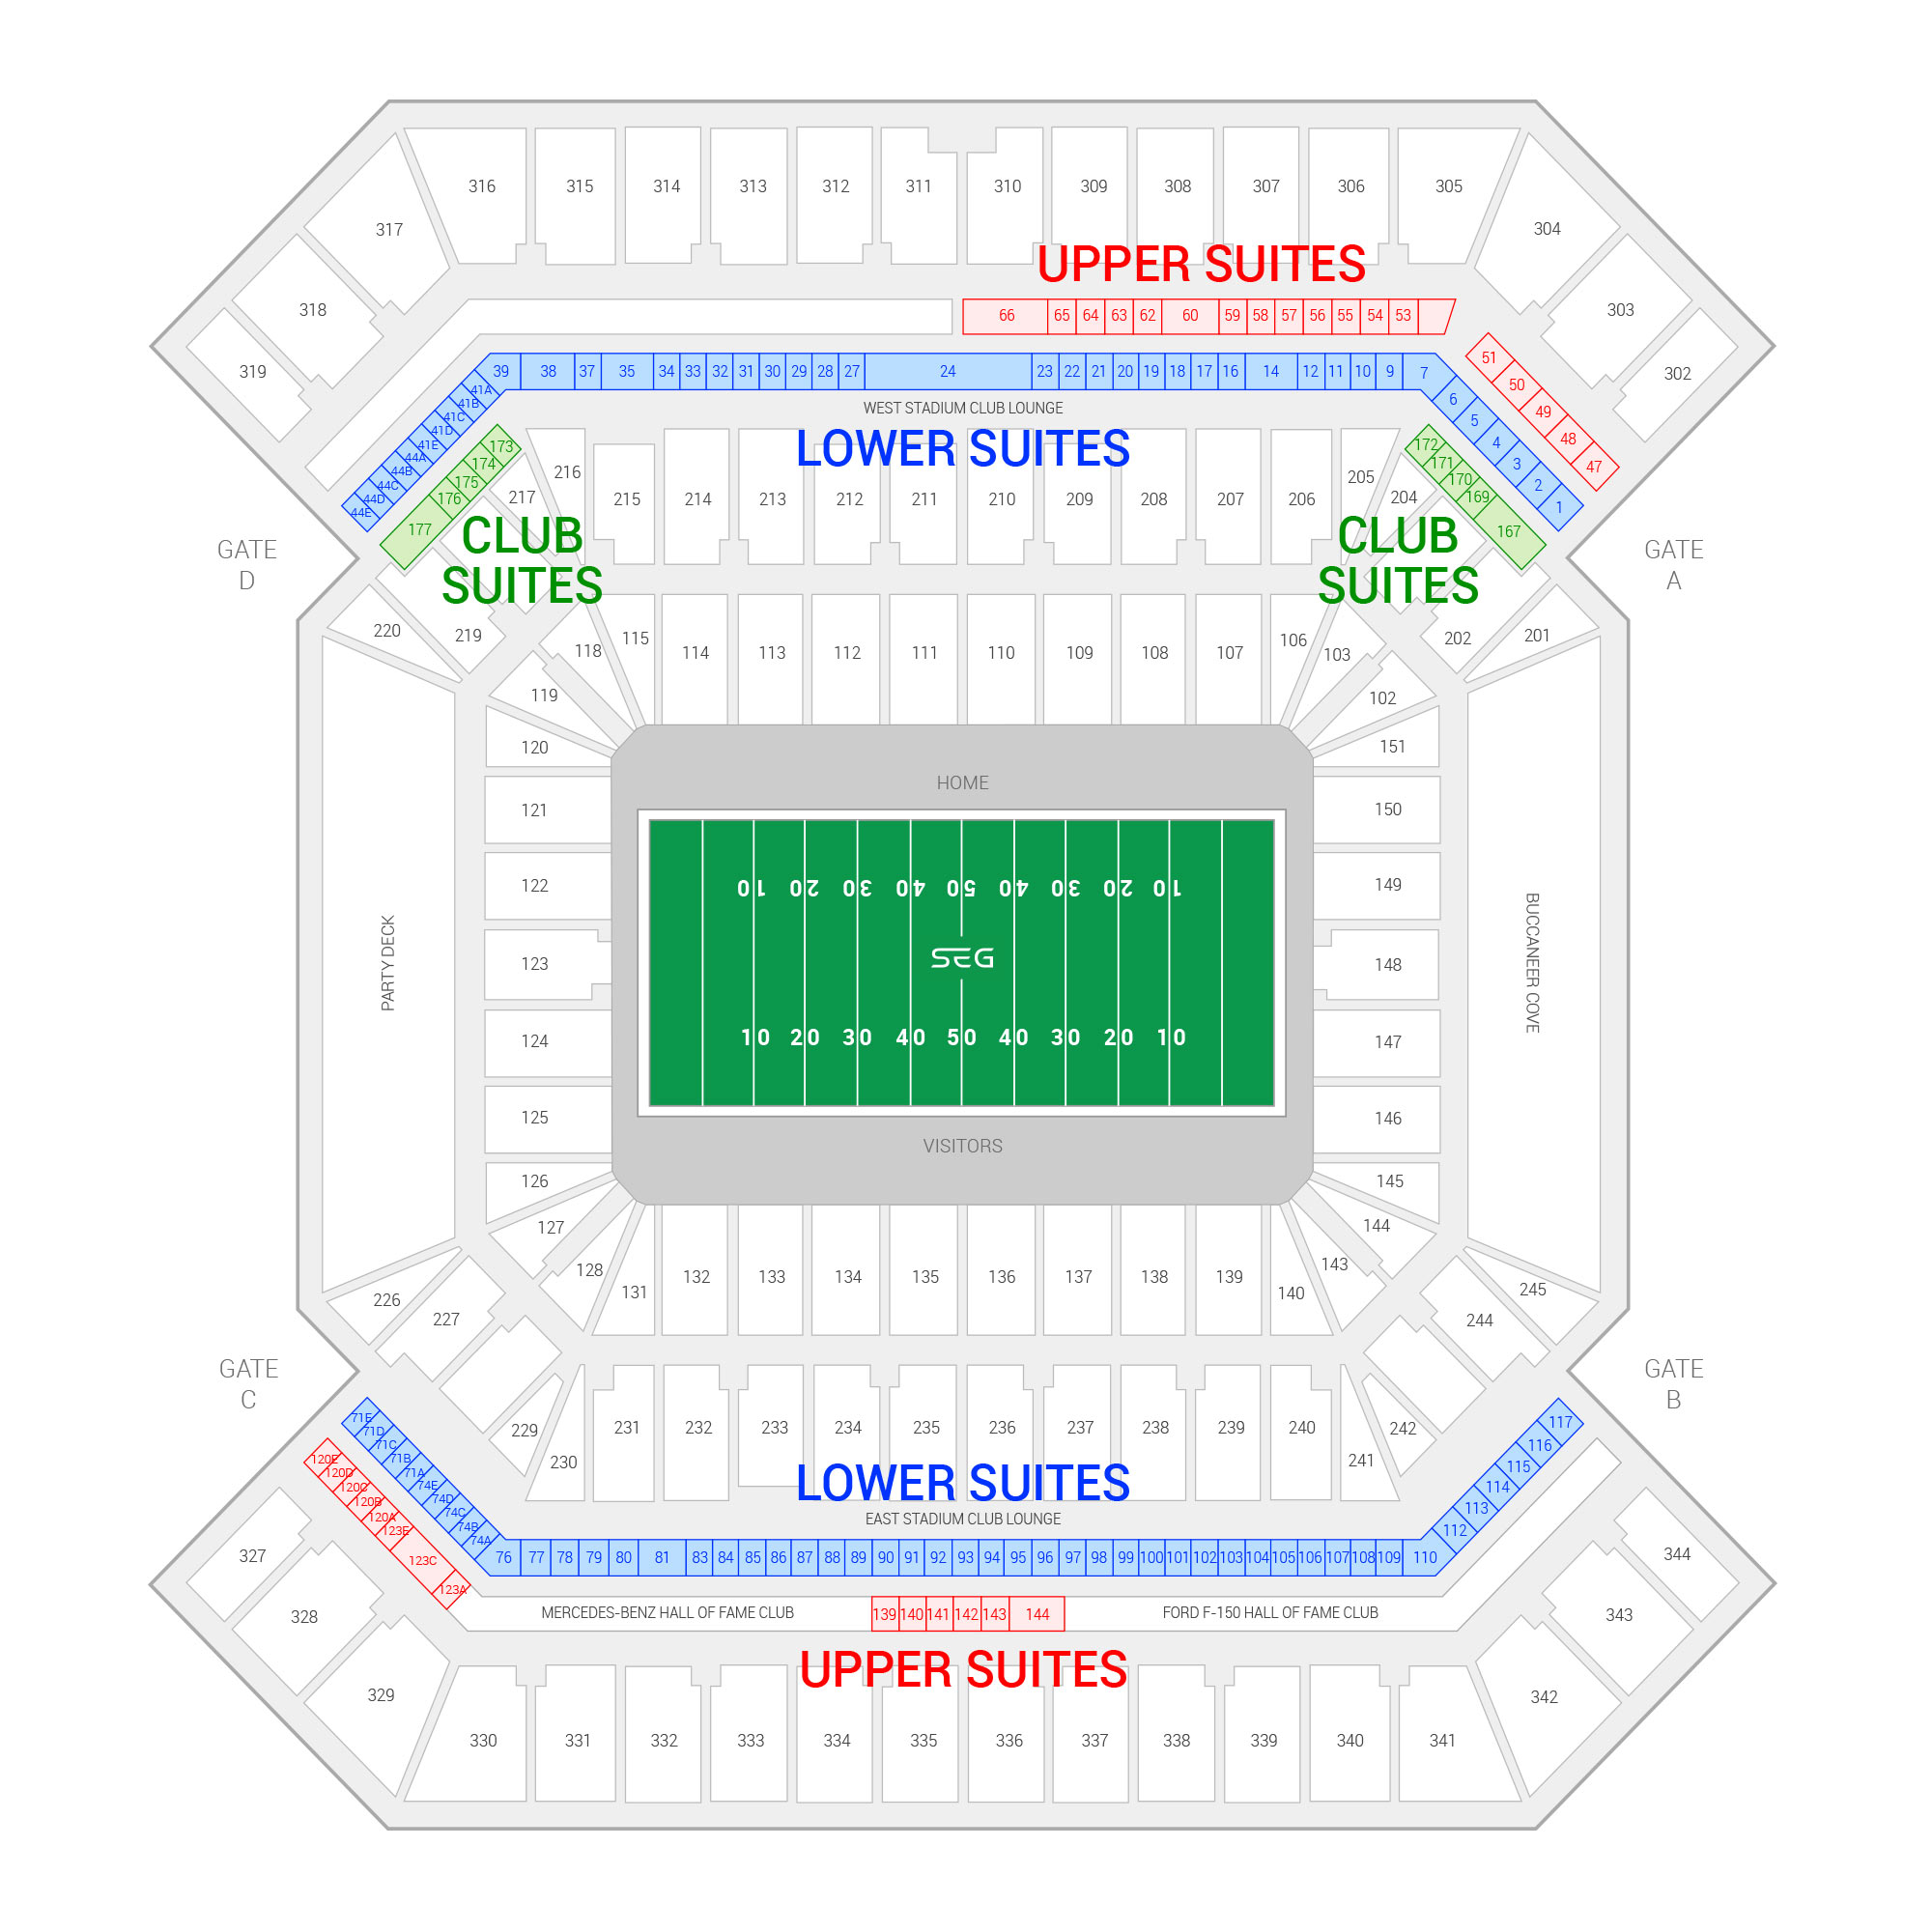 Raymond James Stadium / Super Bowl LV Suite Map and Seating Chart